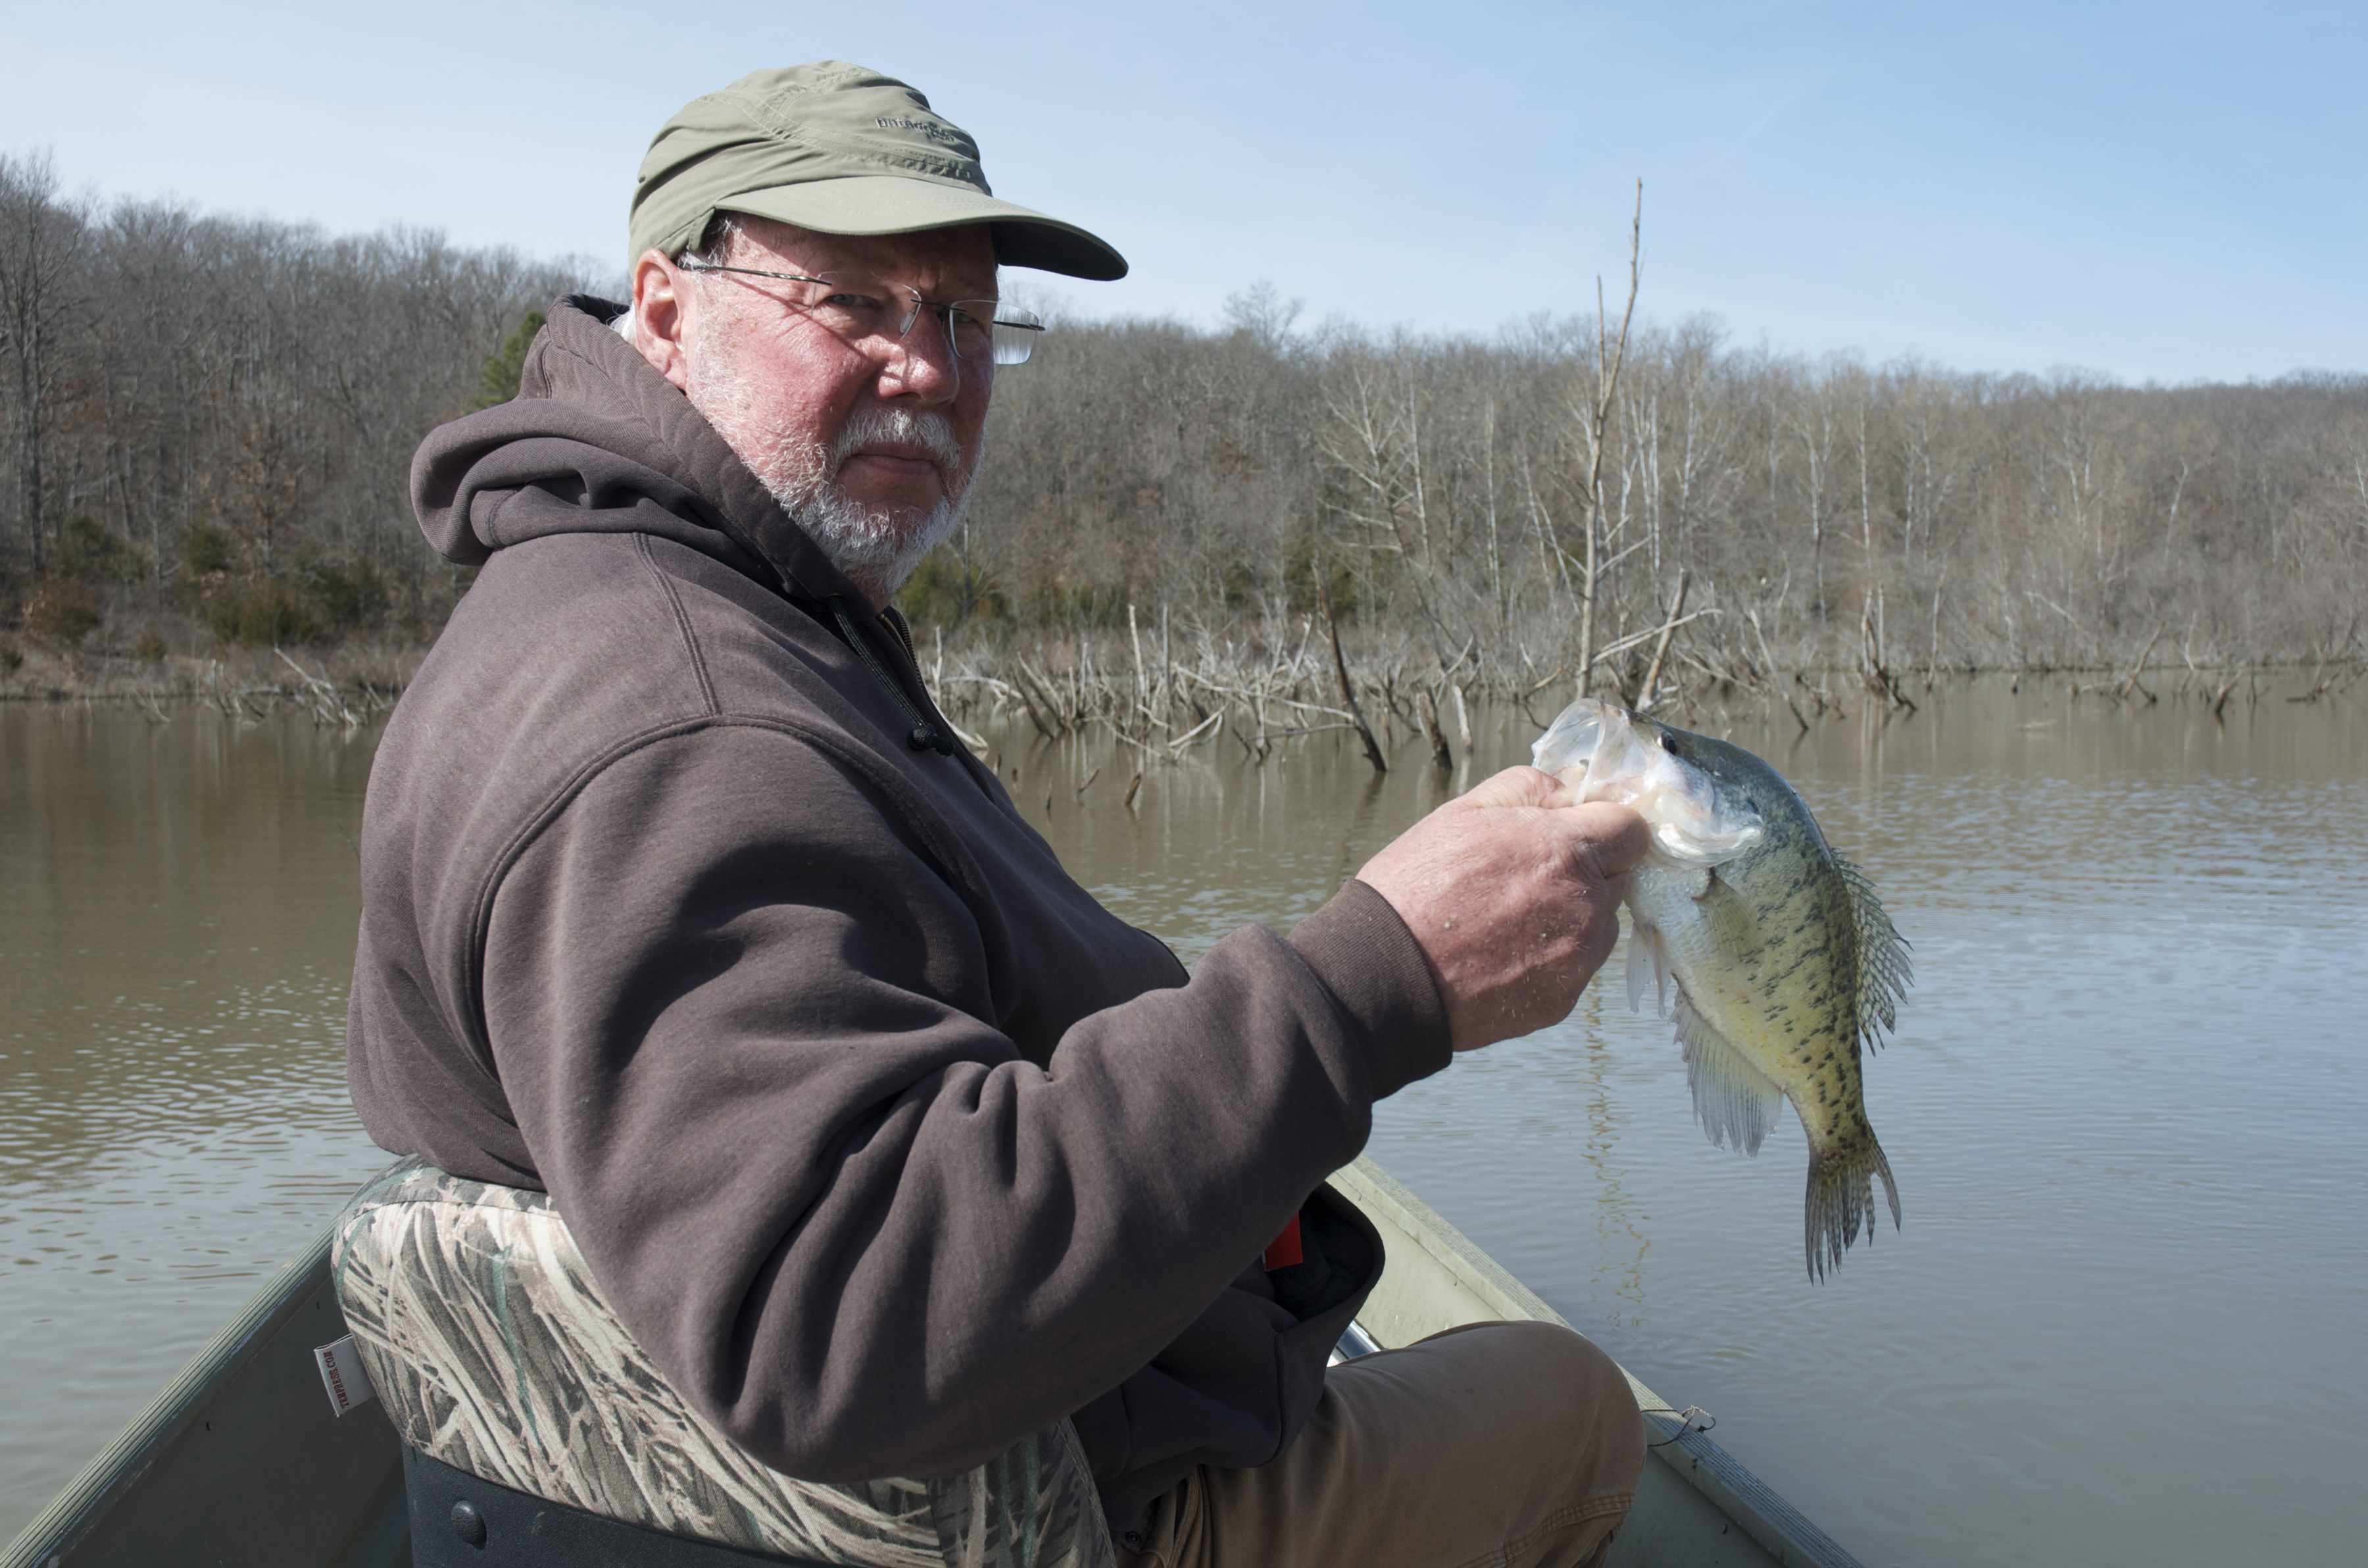 Fishing for crappie river hills traveler for Best crappie fishing times